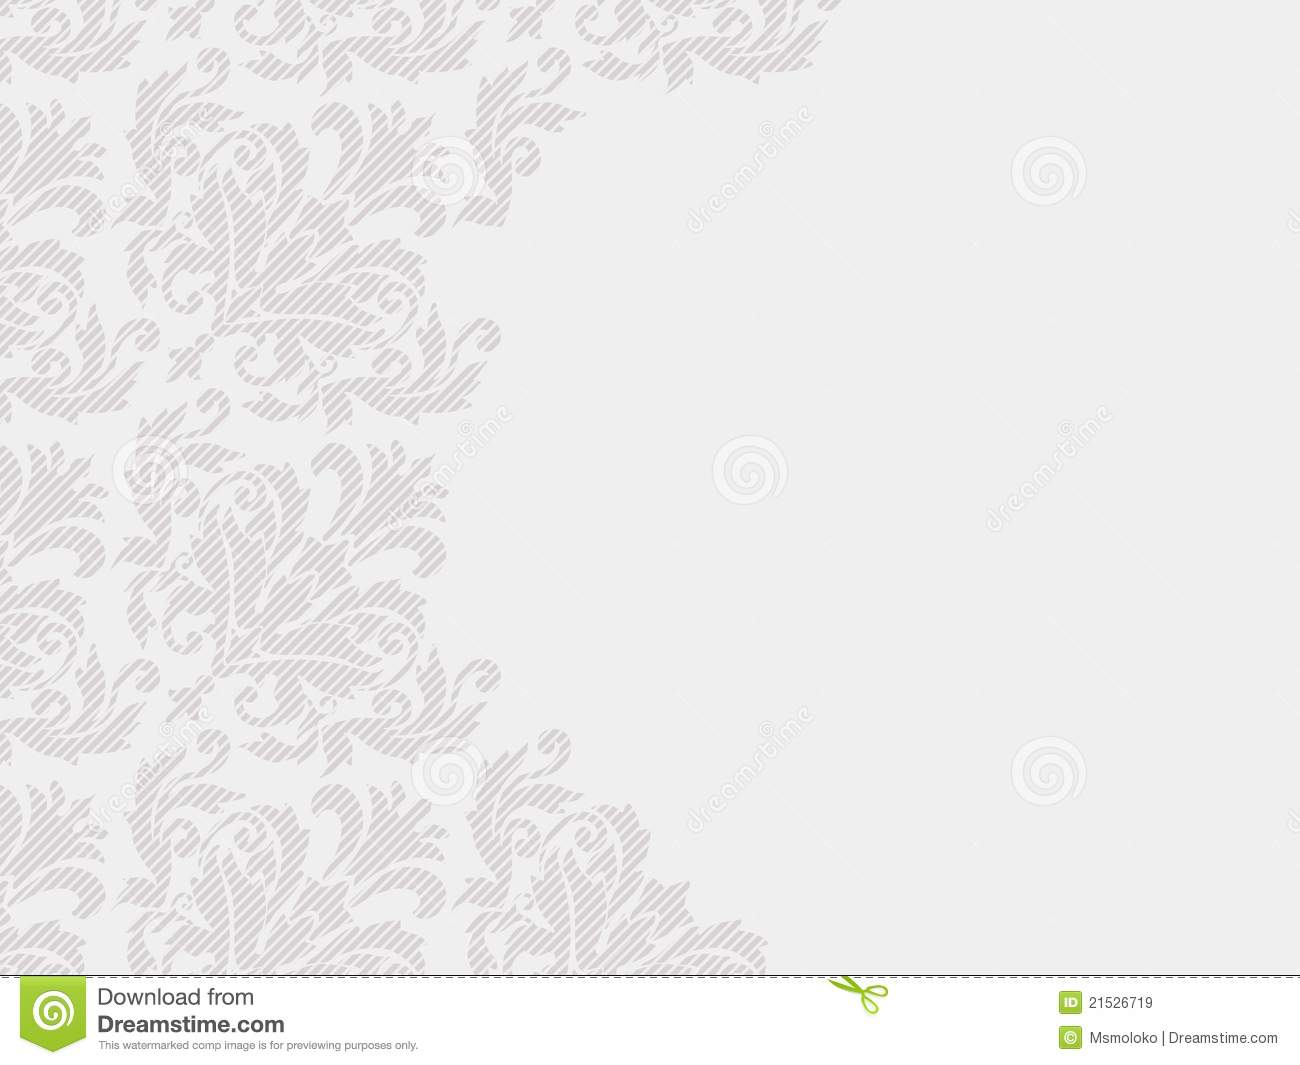 Textured Paper For Wedding Invitations: Floral Textured Wedding Invitation Stock Vector